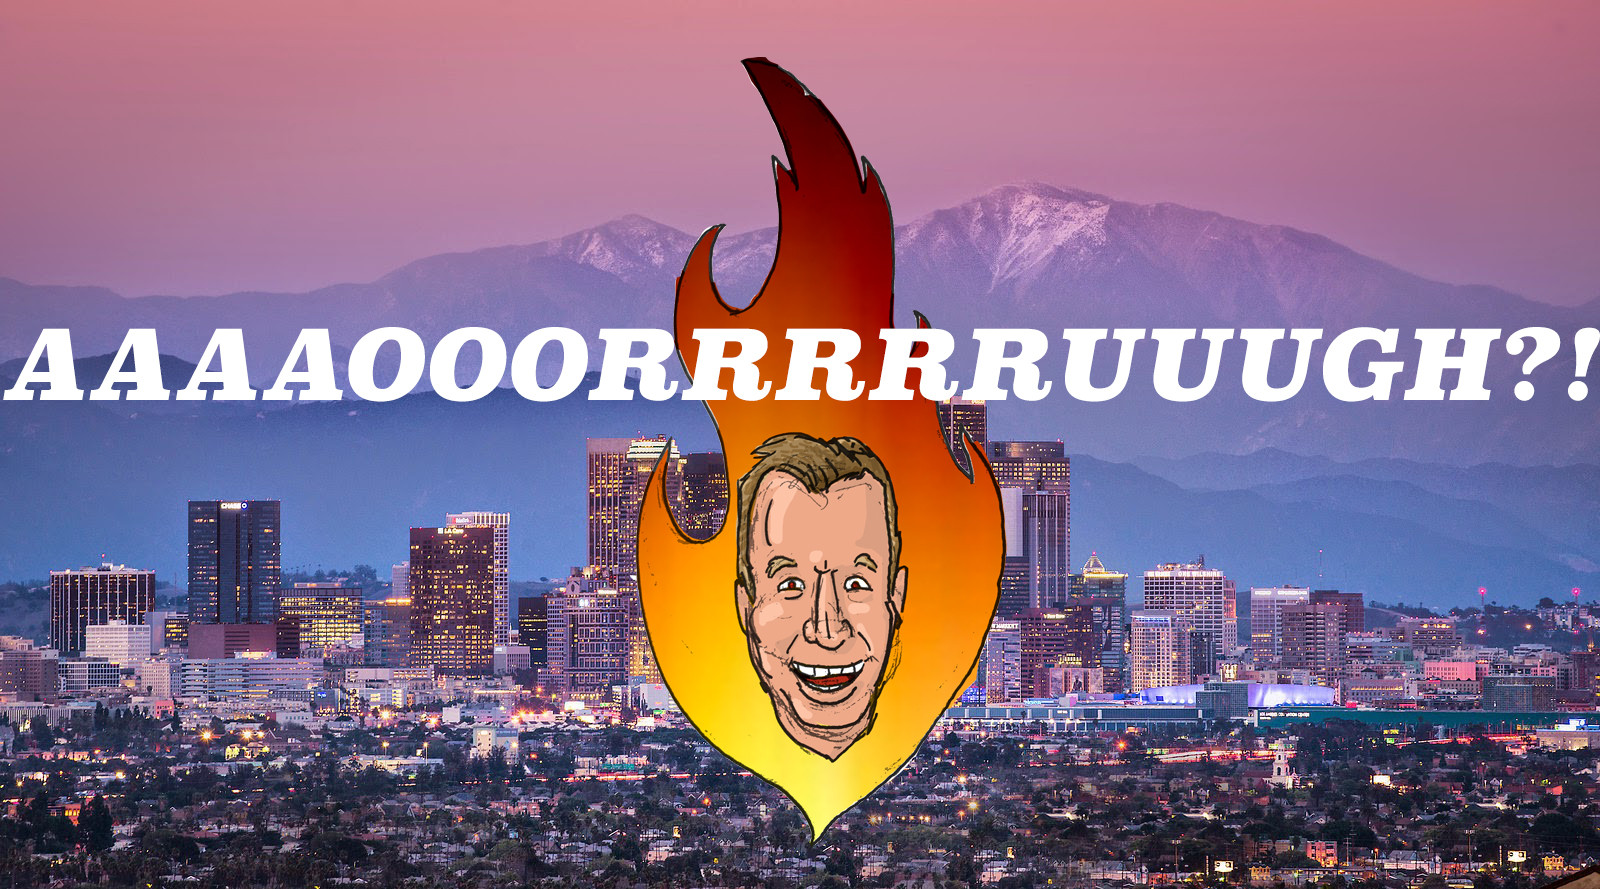 Tim Allen's Head in Hell Over Downtown Los Angeles